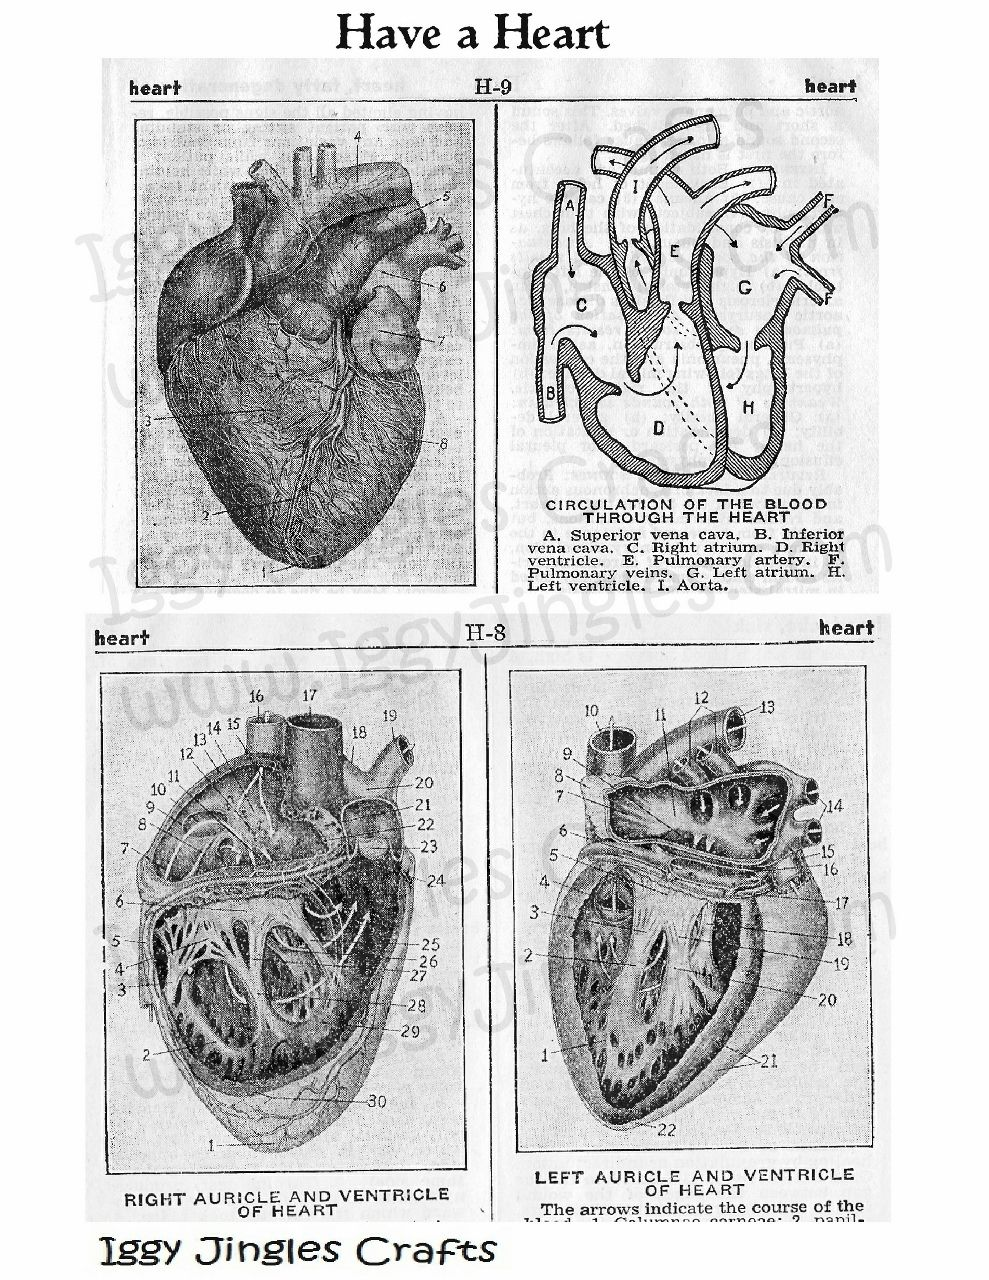 Have a Heart Vintage Image collage sheet in Black and White